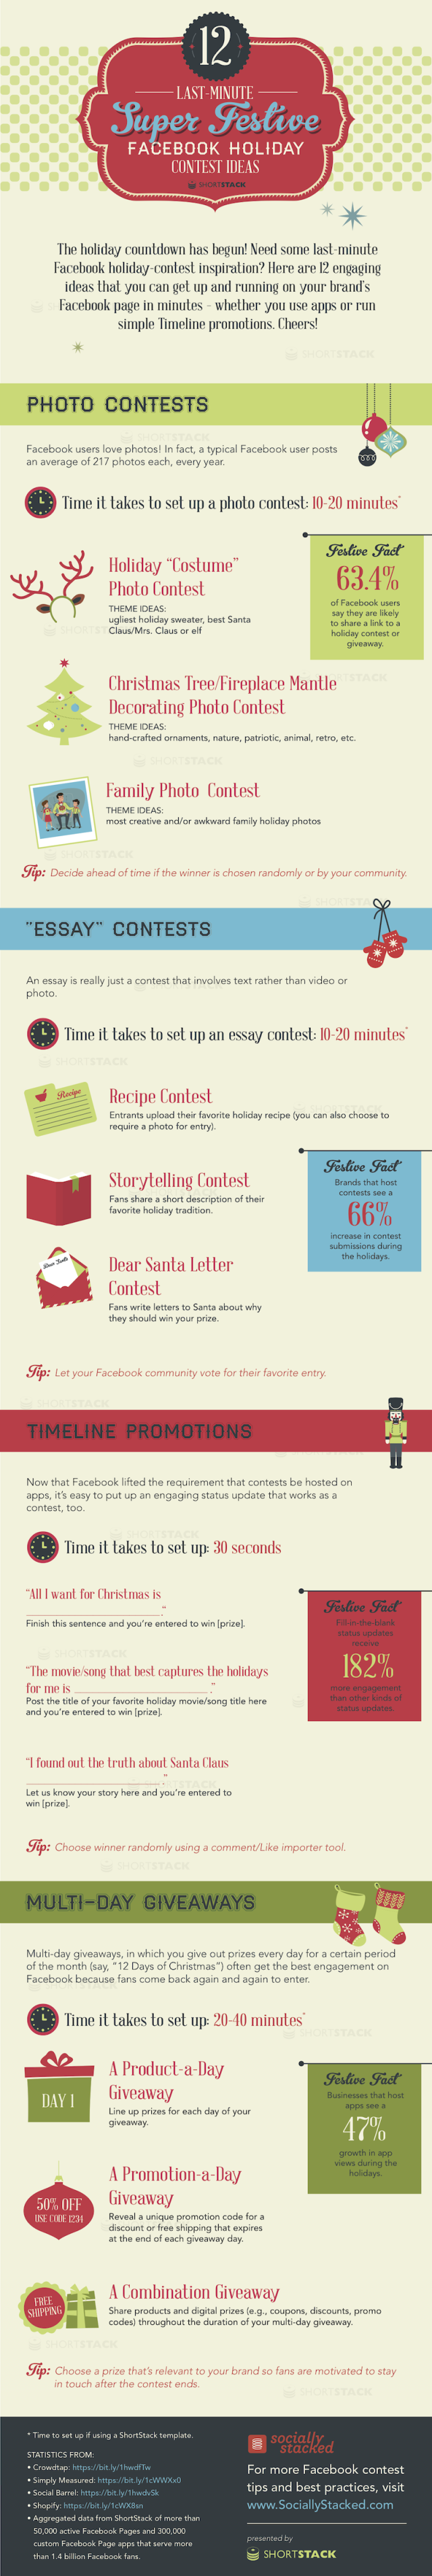 Last Minute Ideas For Holiday Contests On Facebook